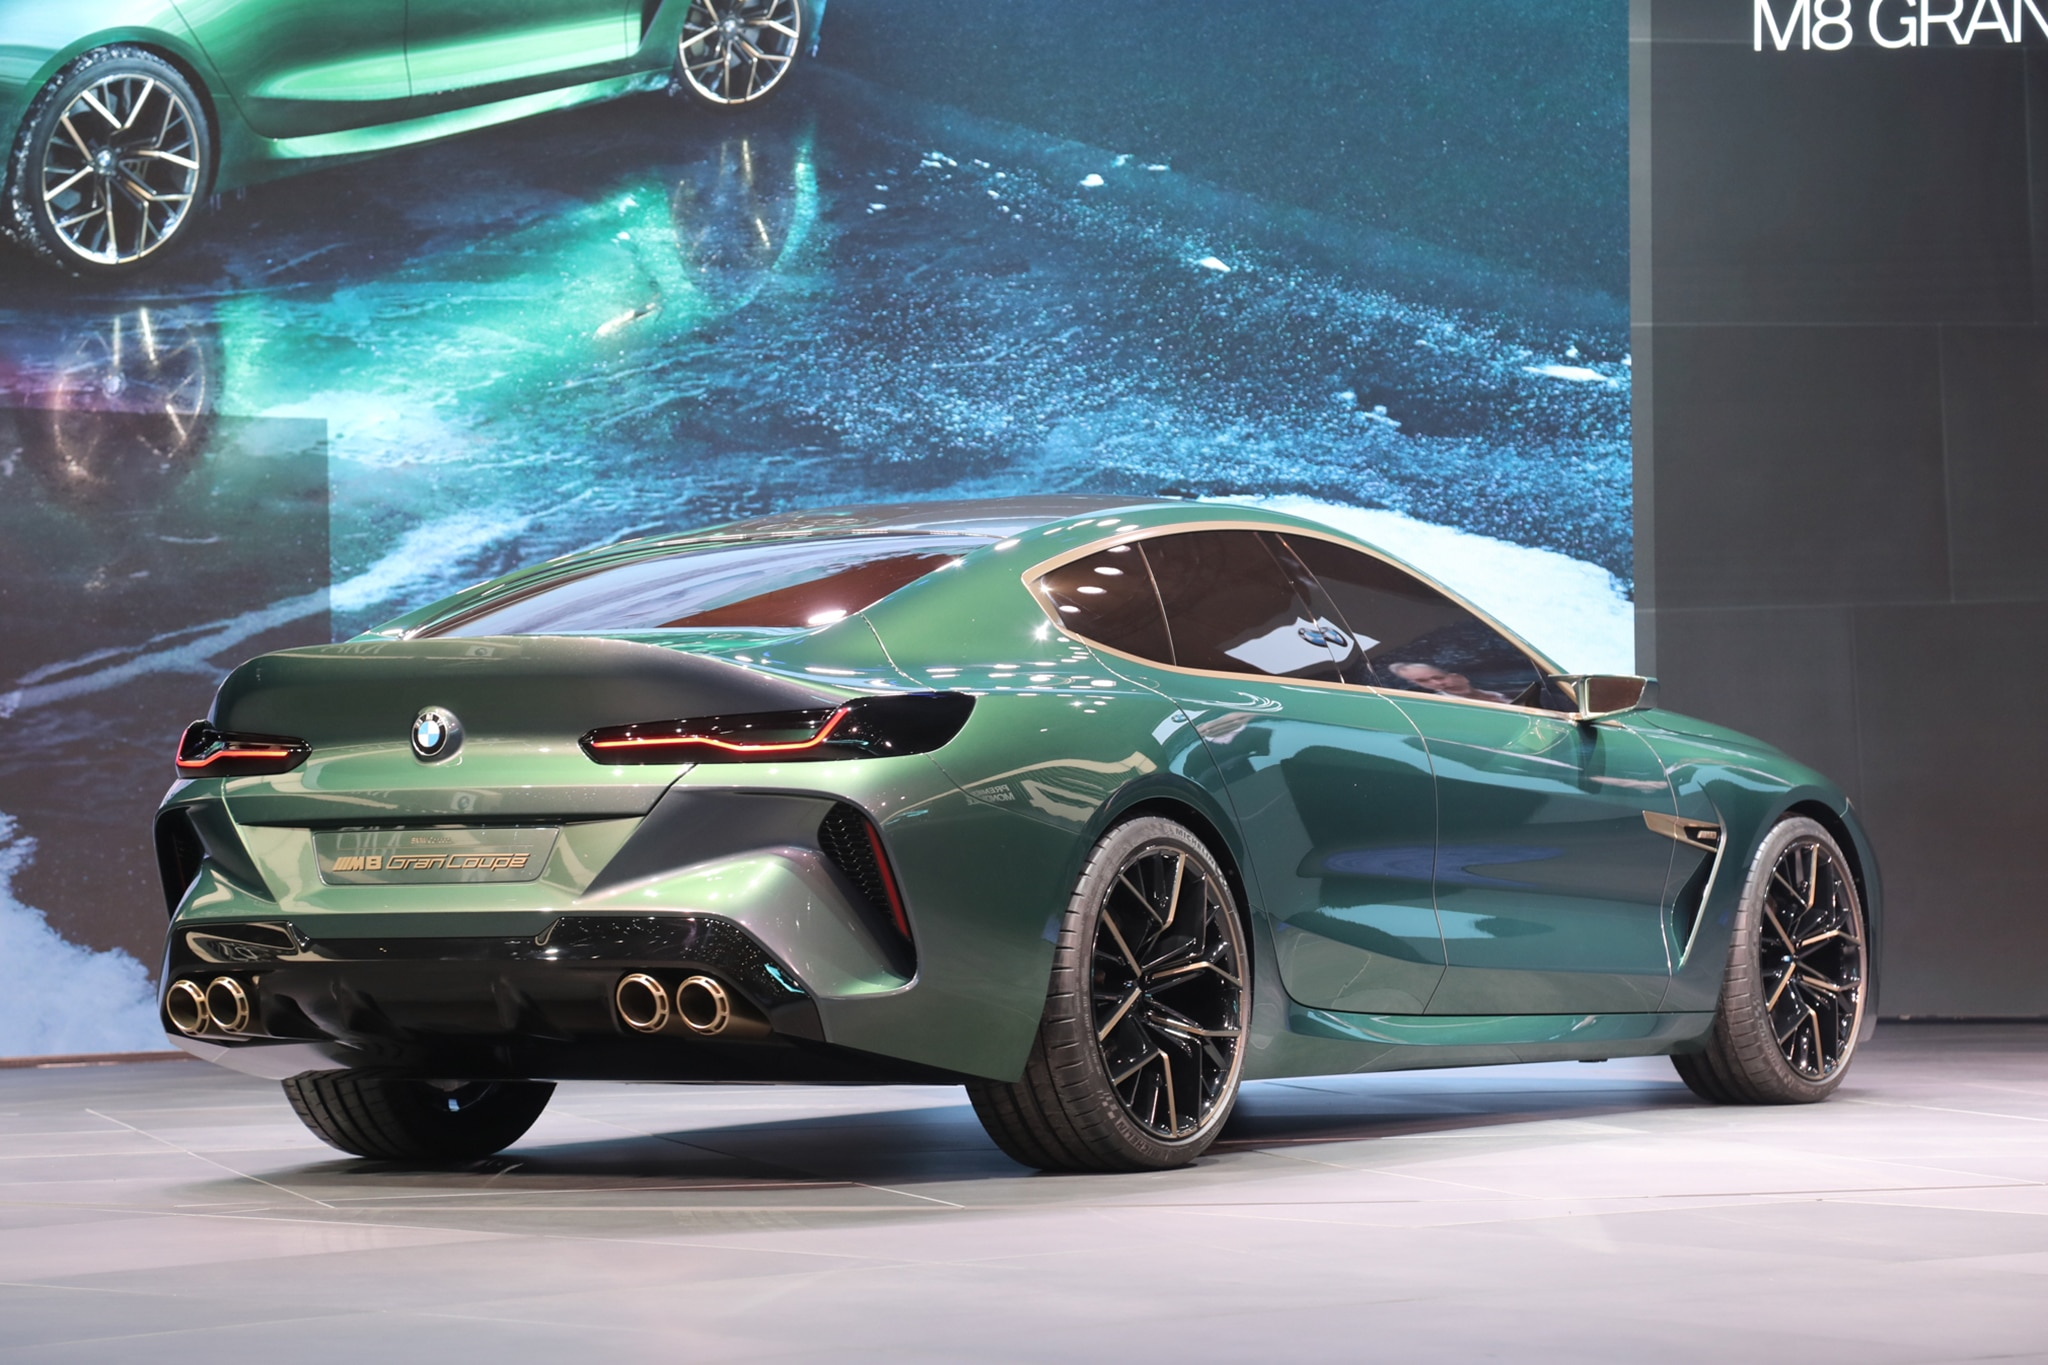 Four Door Bmw Concept M8 Gran Coupe Concept Unveiled In Geneva